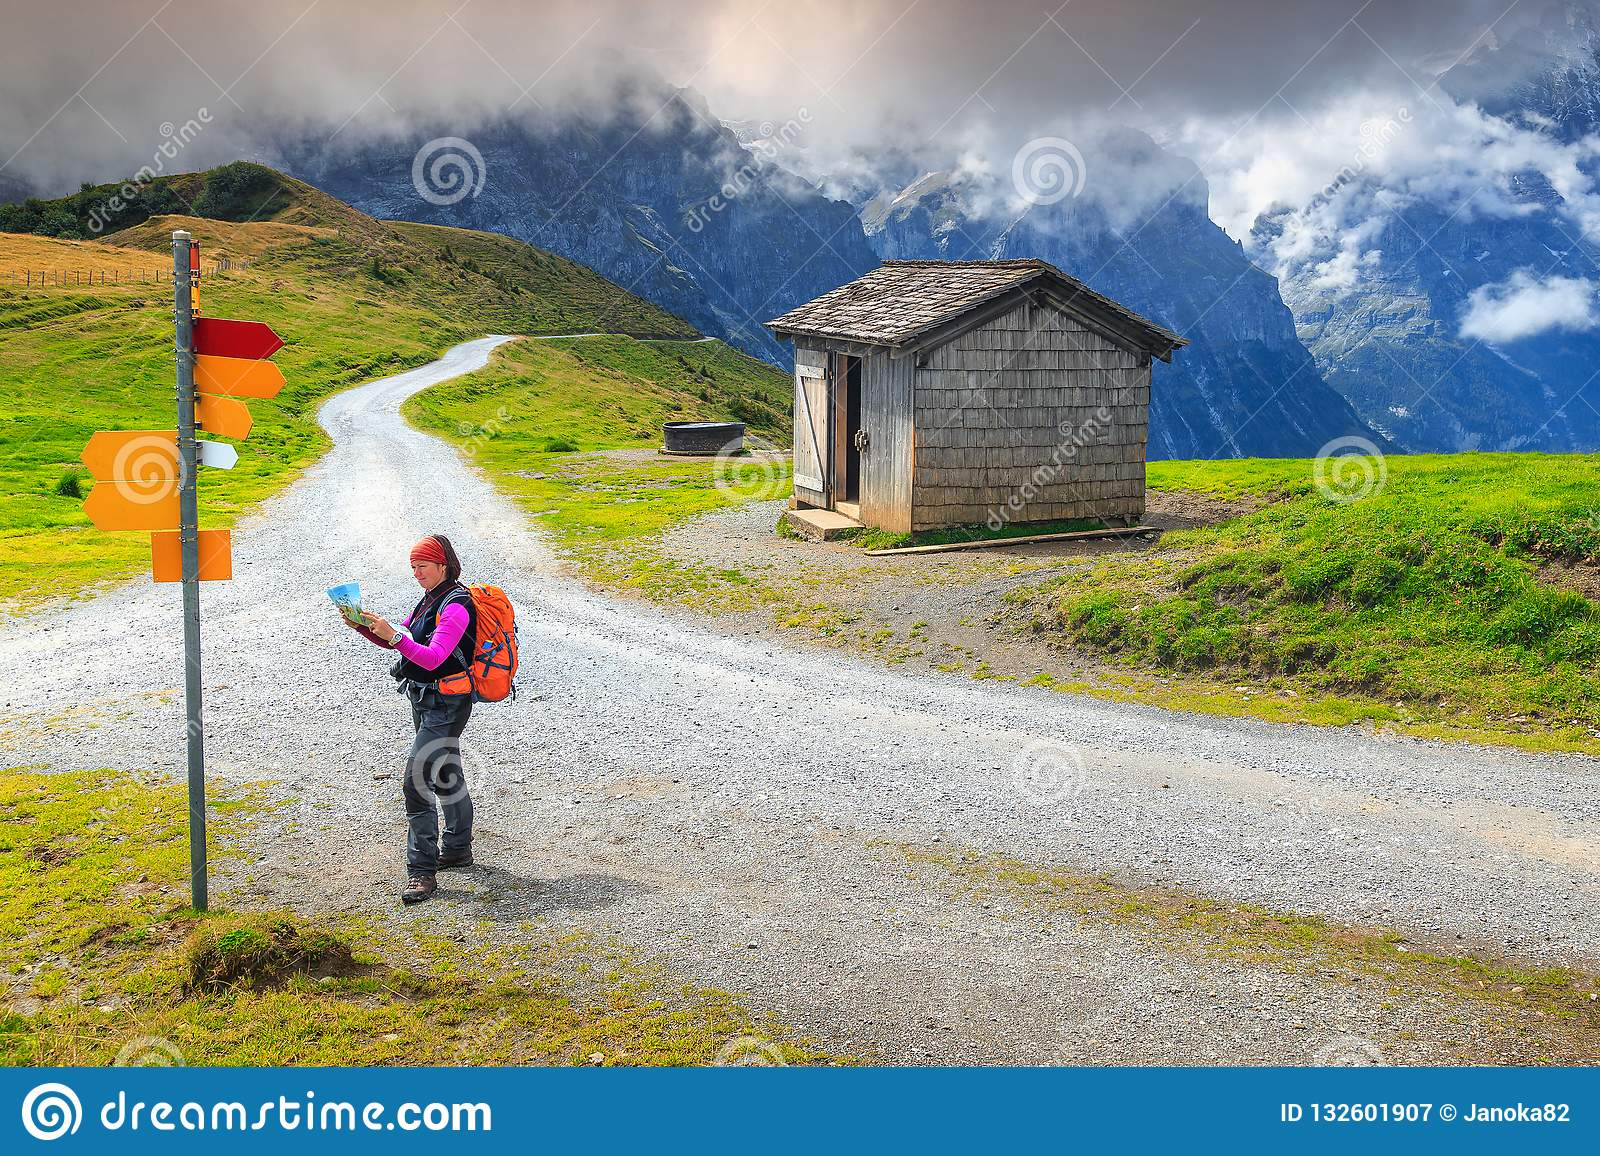 Picture of: Mountain Hiking Trails And Hiker Woman With Map Switzerland Europe Stock Image Image Of Orientate Explorer 132601907